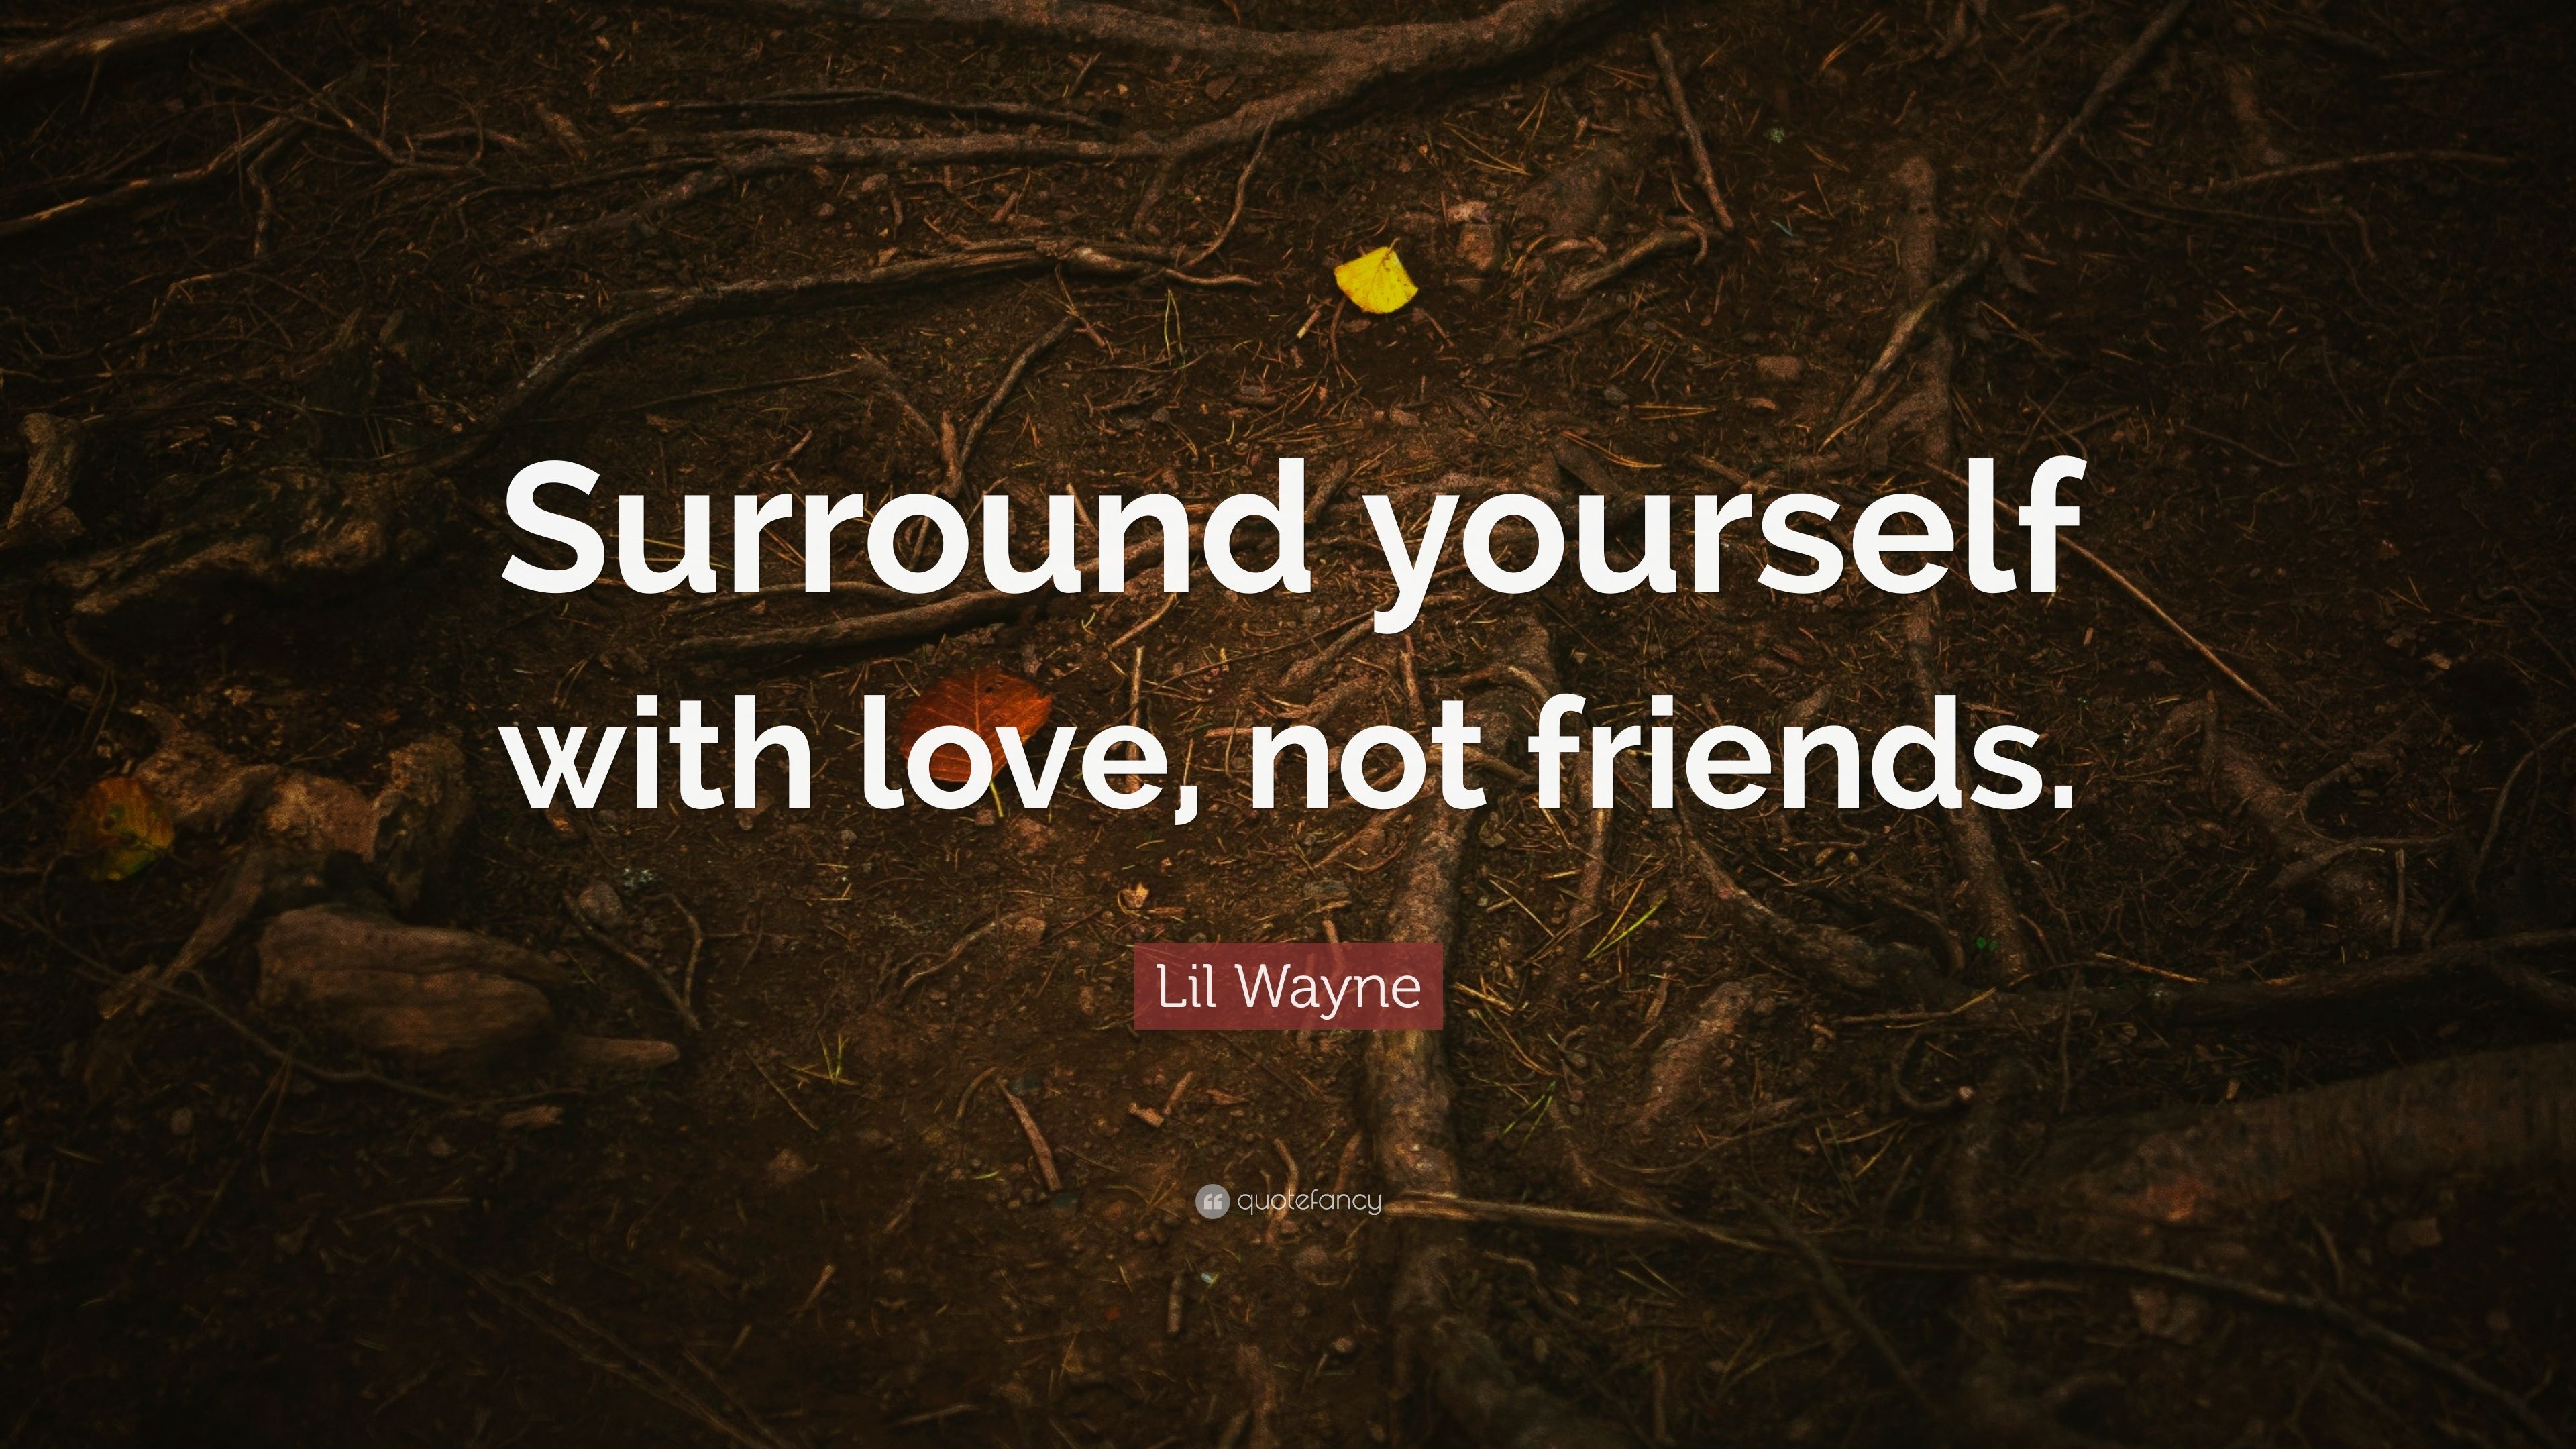 Enjoyable Lil Wayne Quote Surround Yourself With Love Not Friends 7 Funny Birthday Cards Online Inifodamsfinfo